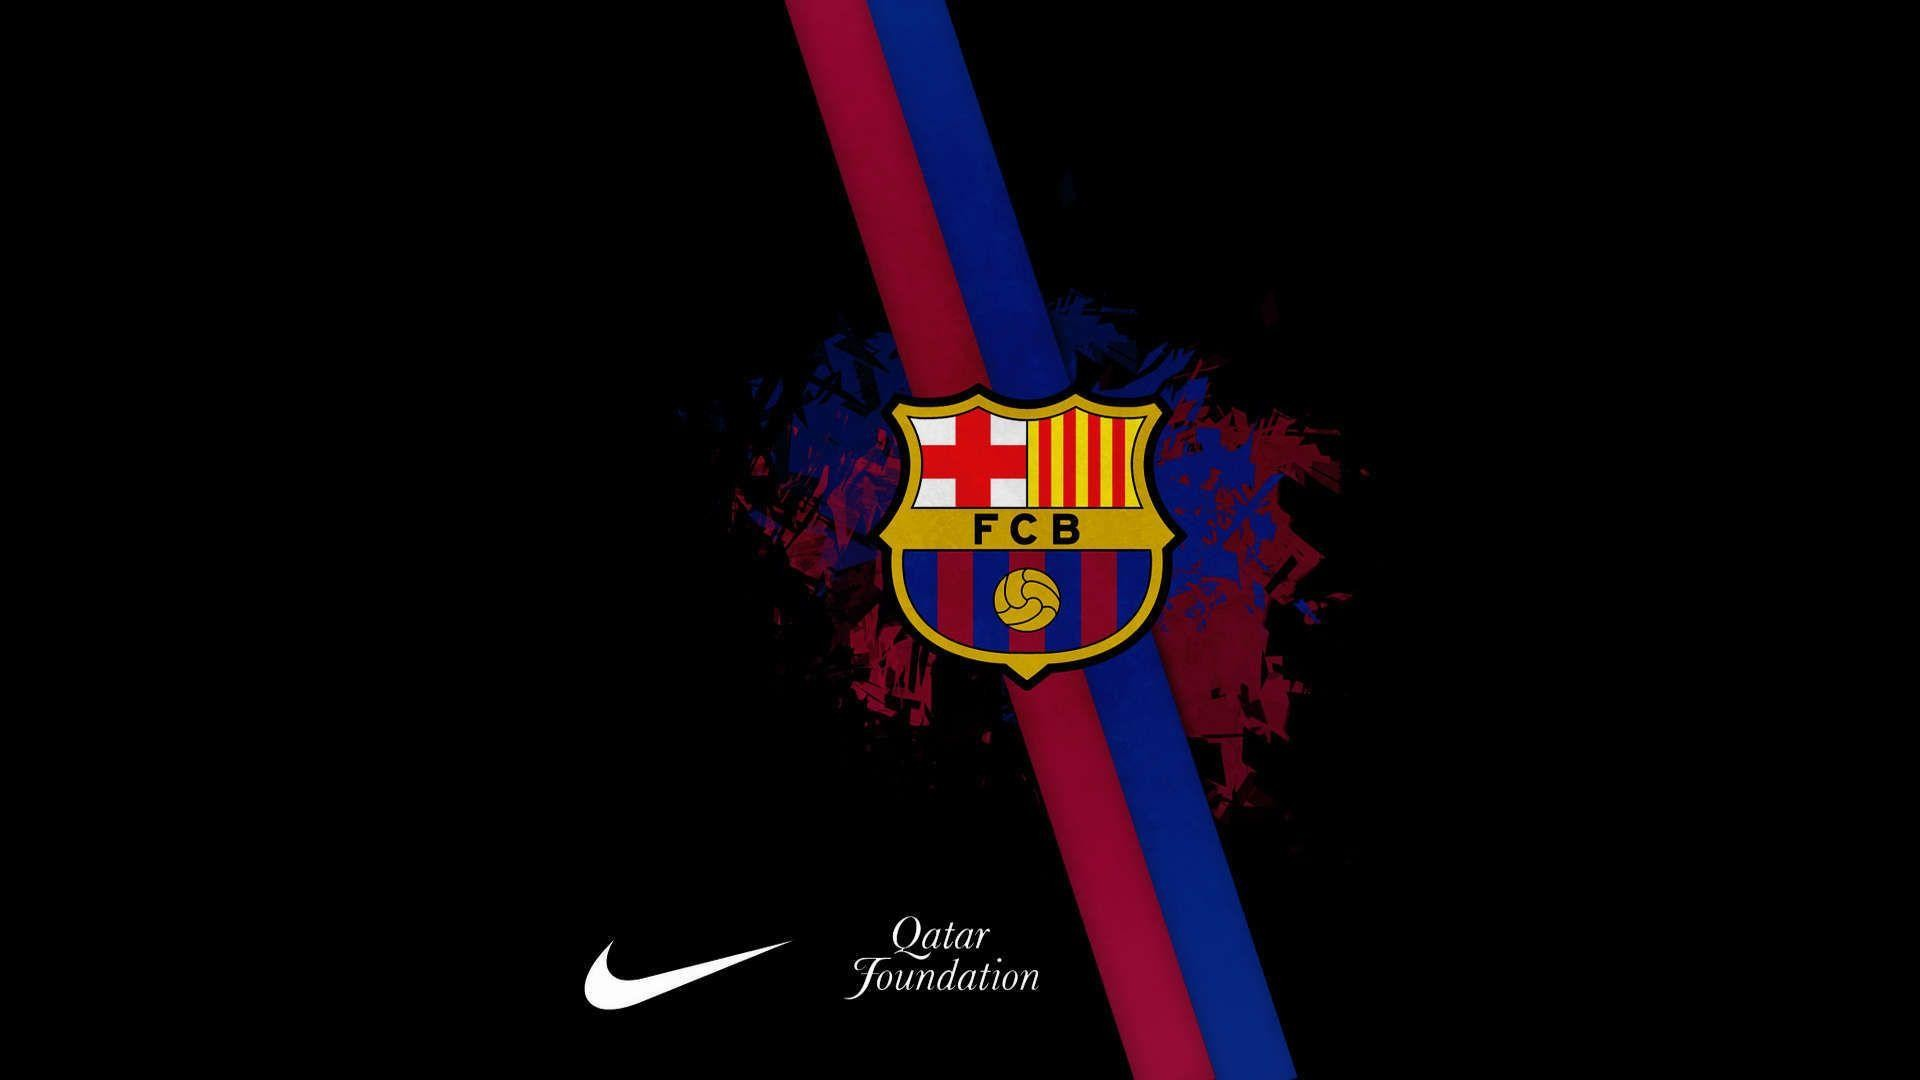 1920x1080 FC Barcelona Logo Wallpaper Download | HD Wallpapers, Backgrounds .